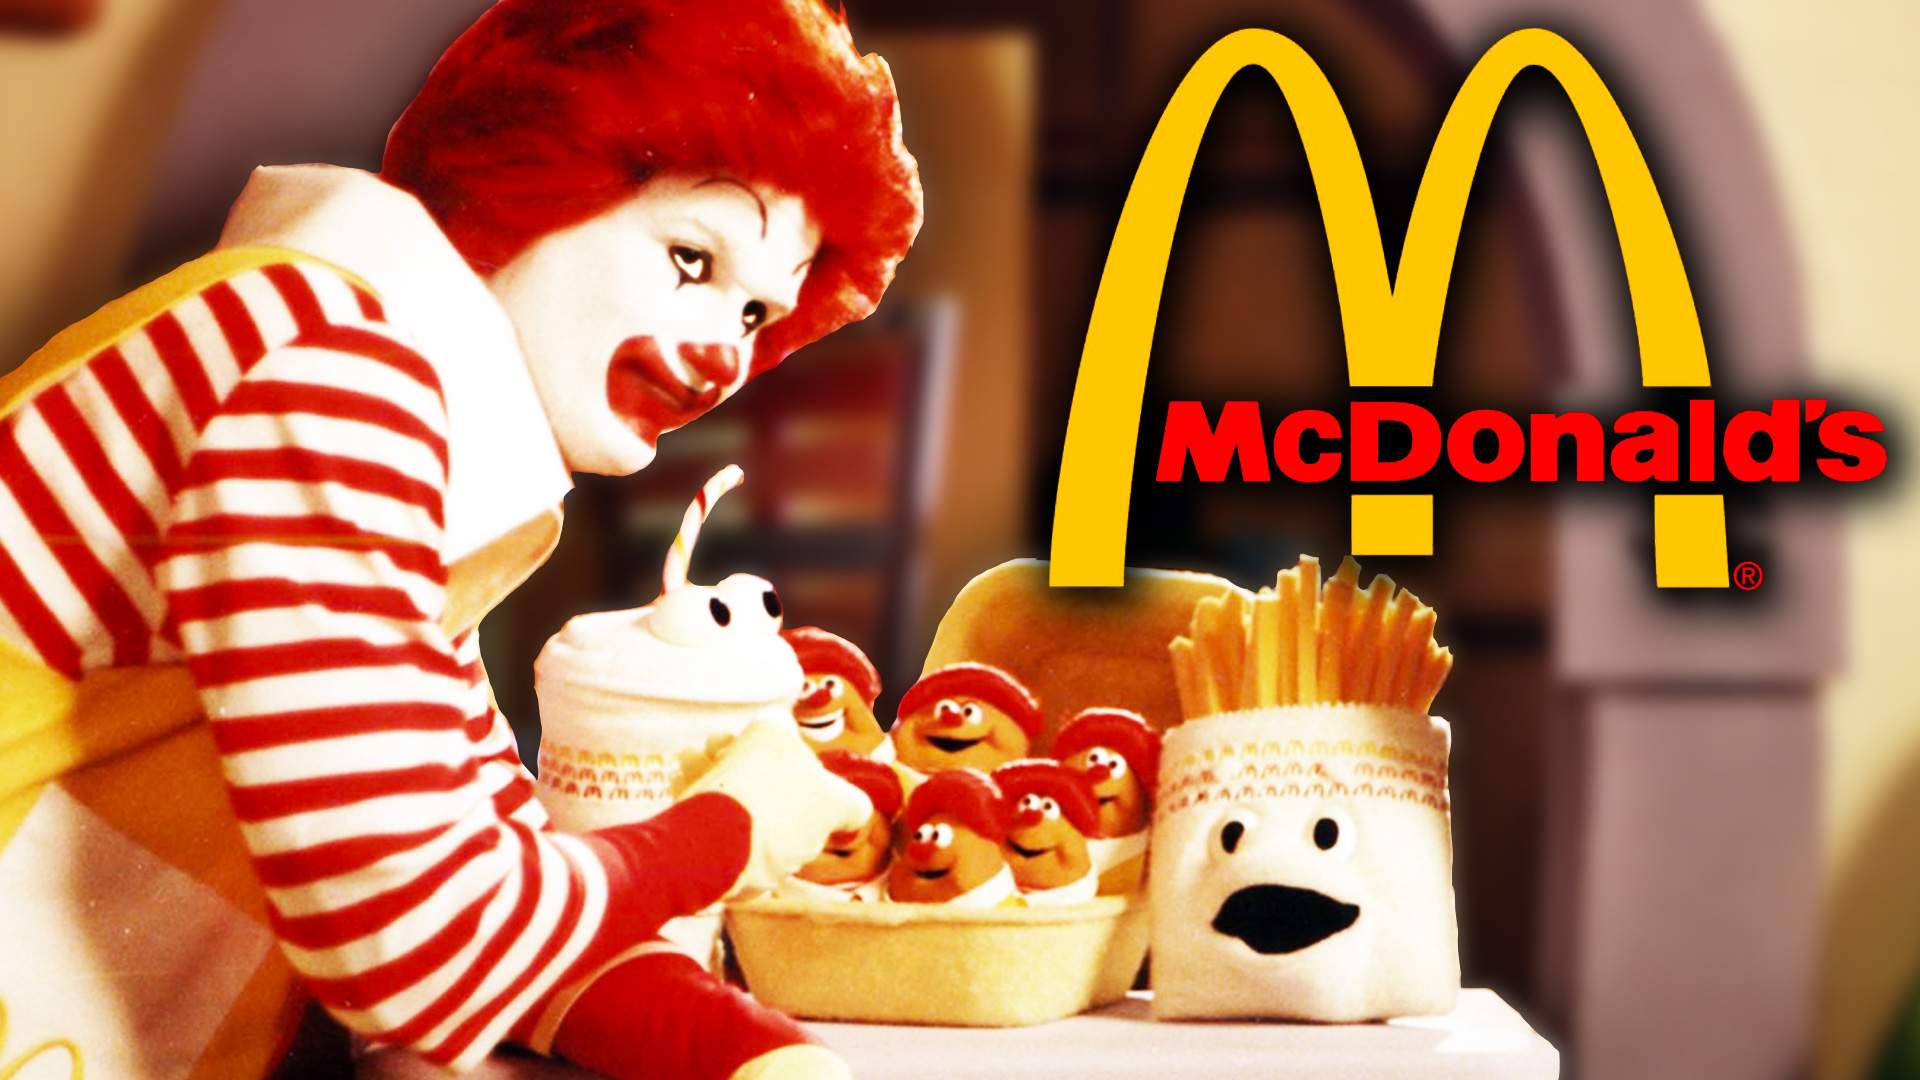 Ronald McDonald - McDonald's items you shouldn't eat according to reddit